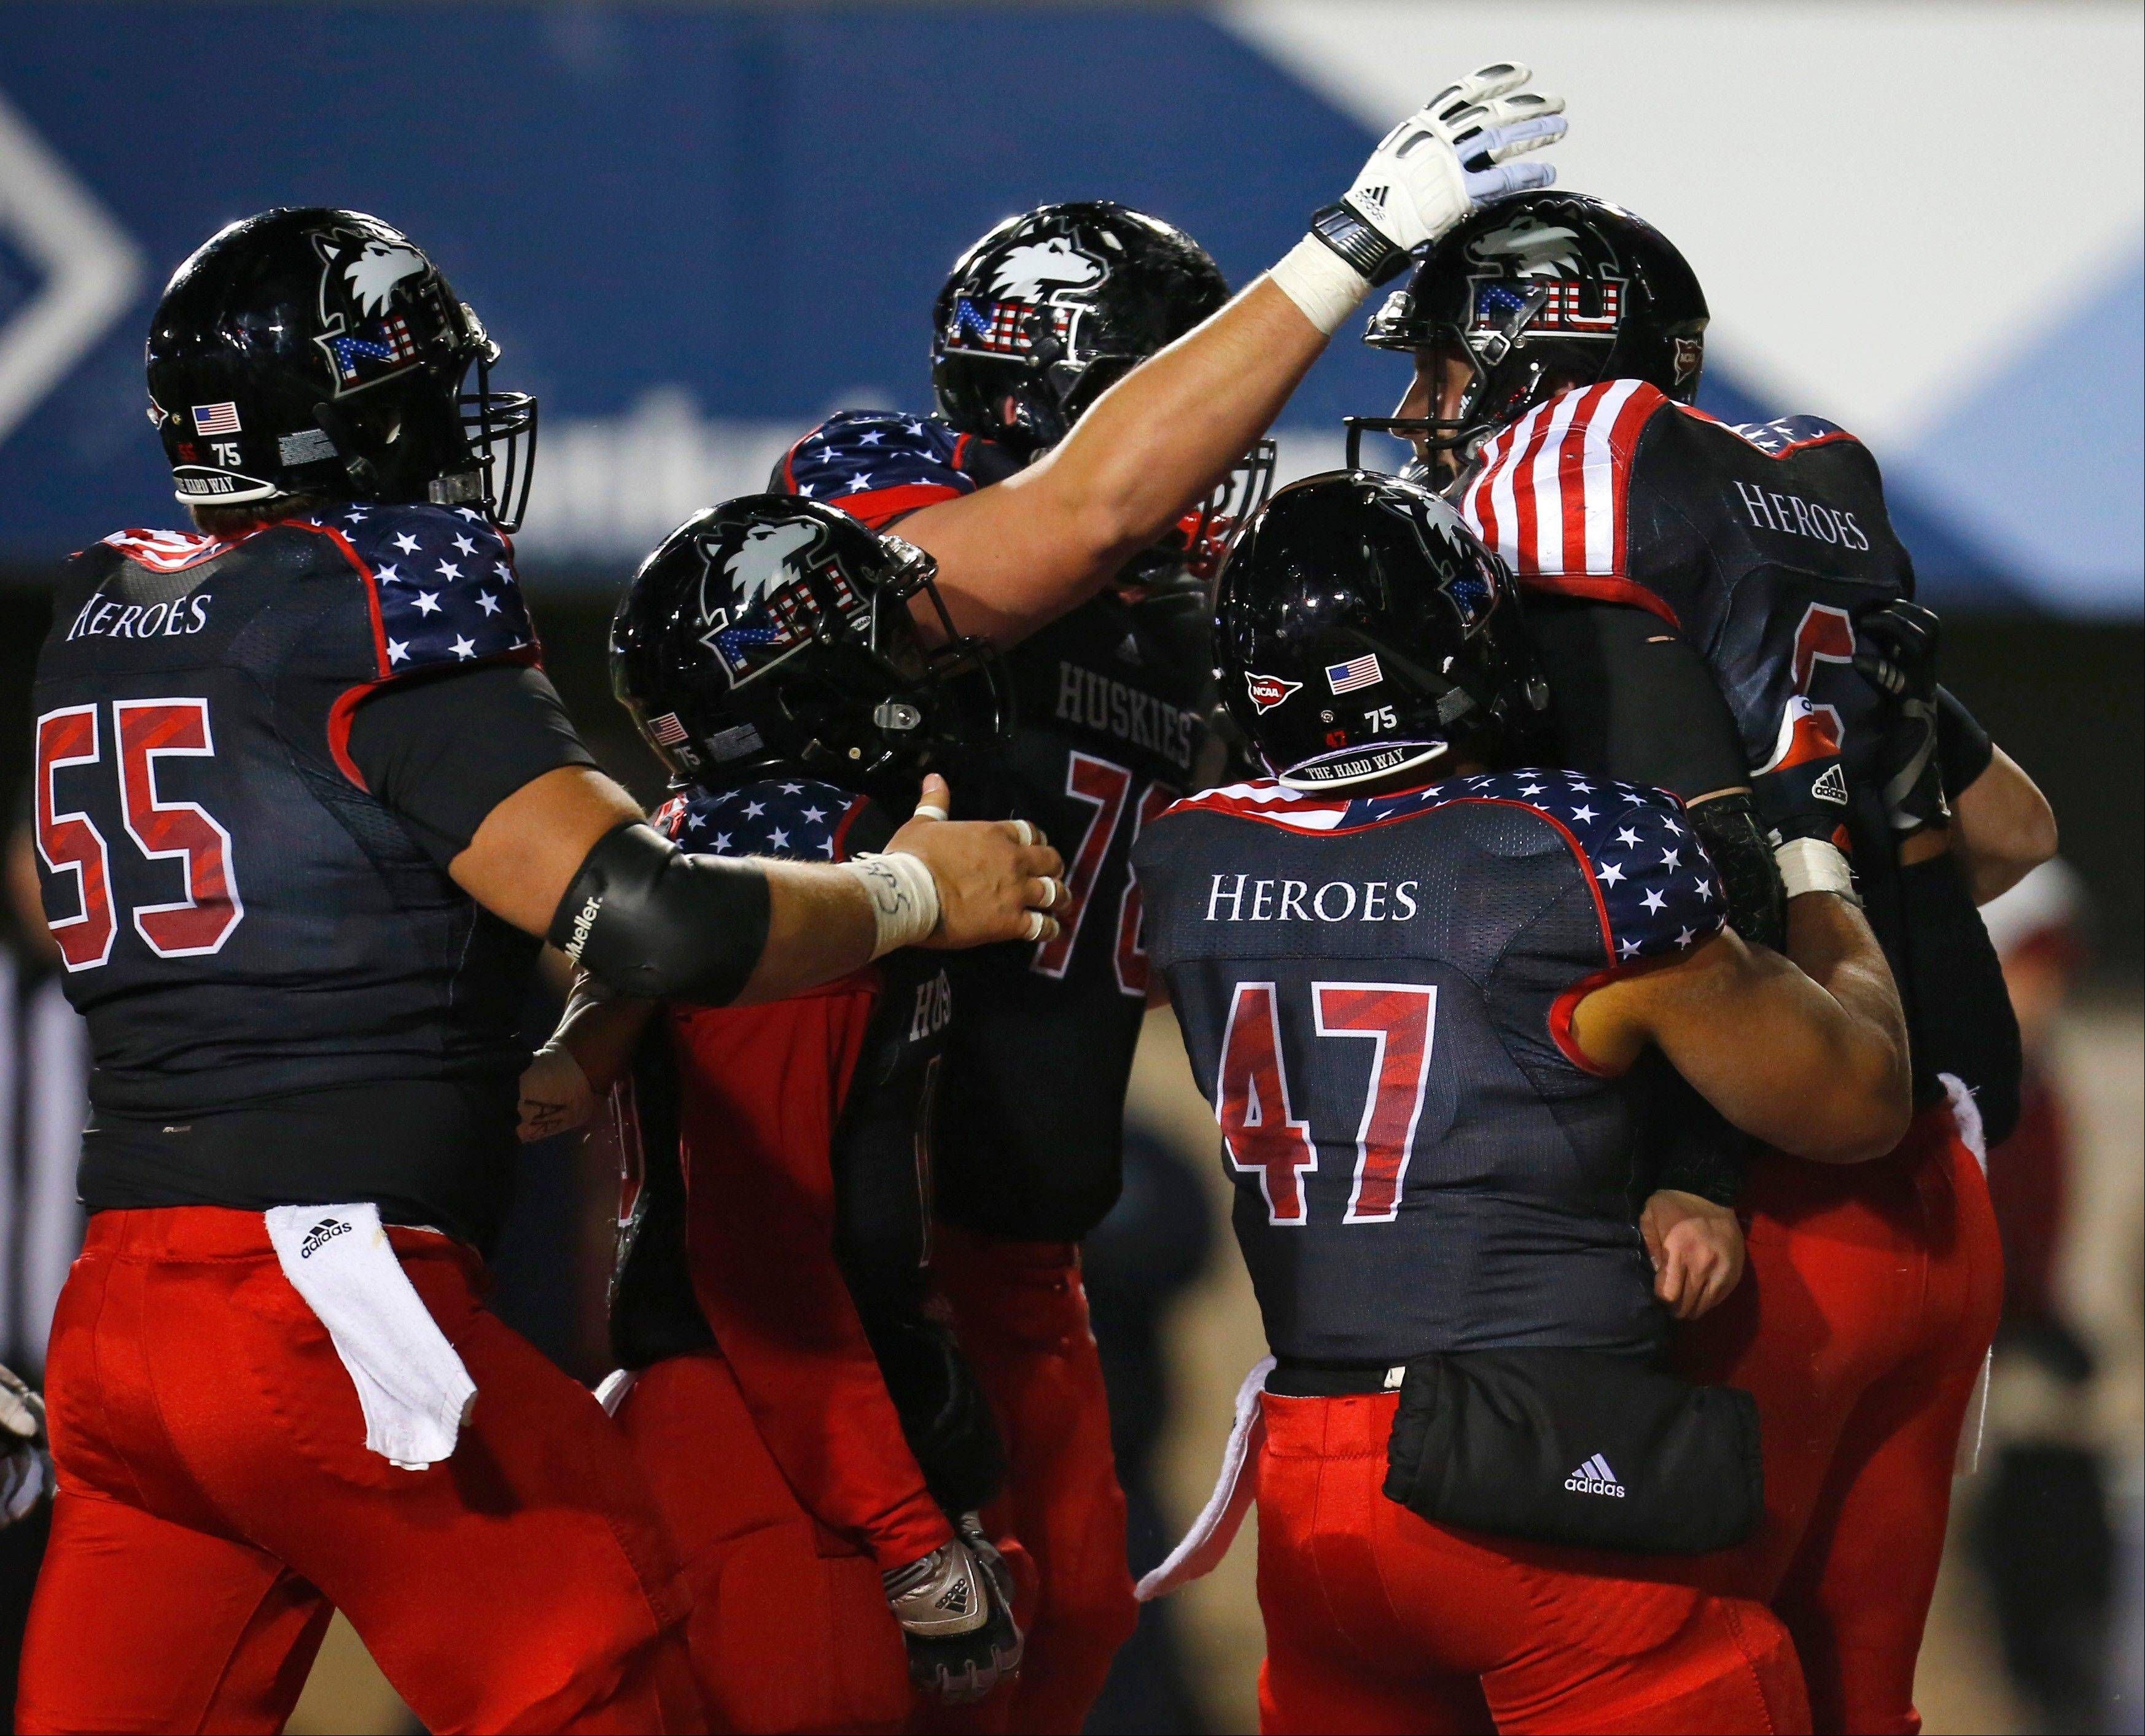 Northern Illinois quarterback Jordan Lynch, right, celebrates with teammates after scoring a touchdown during the second half of an NCAA college football game against Ball State on Wednesday, Nov. 13, 2013, in DeKalb, Ill. Northern Illinois won 48-27. (AP Photo/Jeff Haynes)